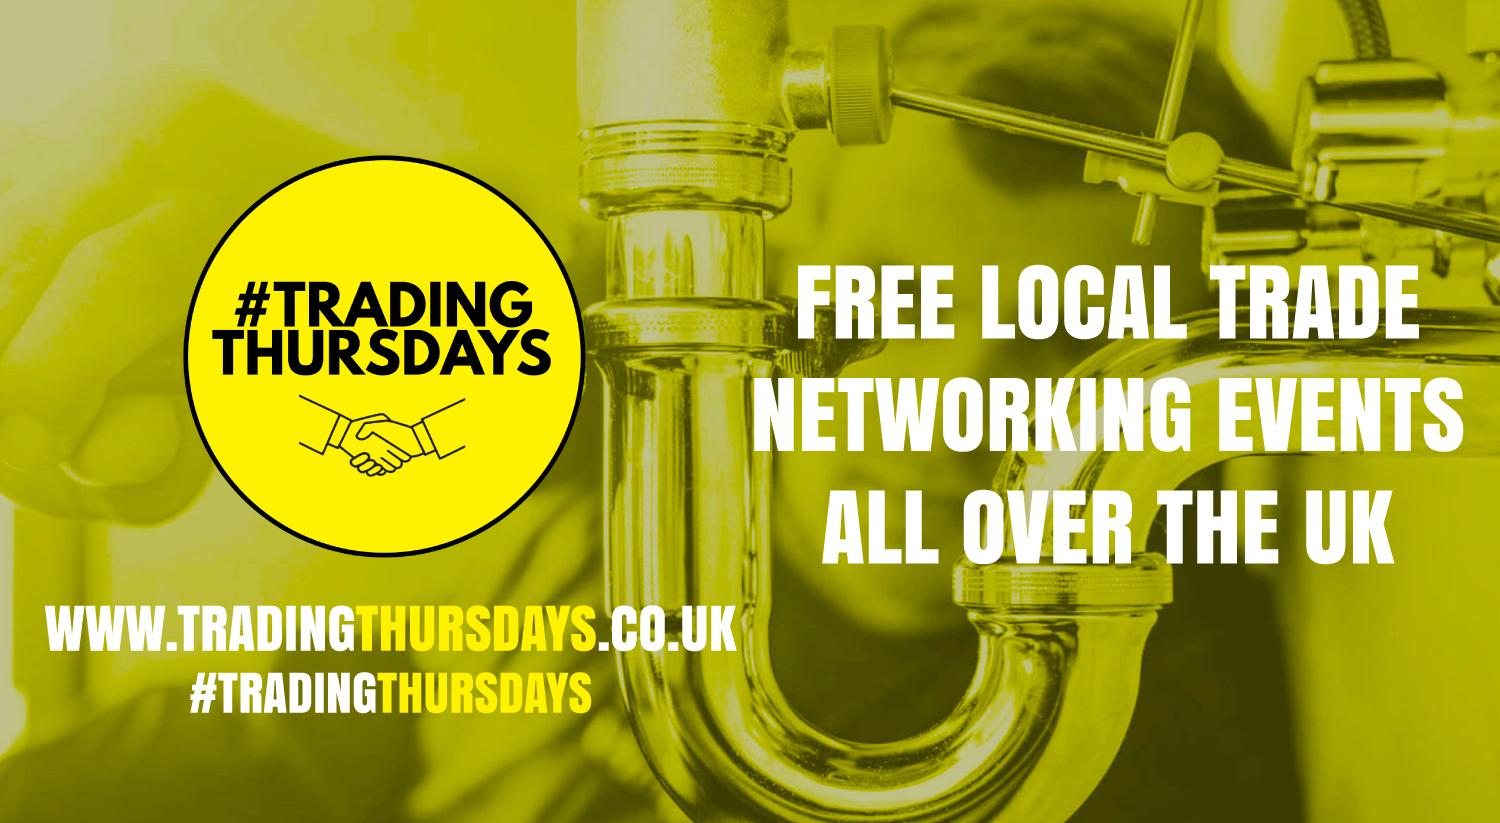 Trading Thursdays! Free networking event for traders in Doncaster